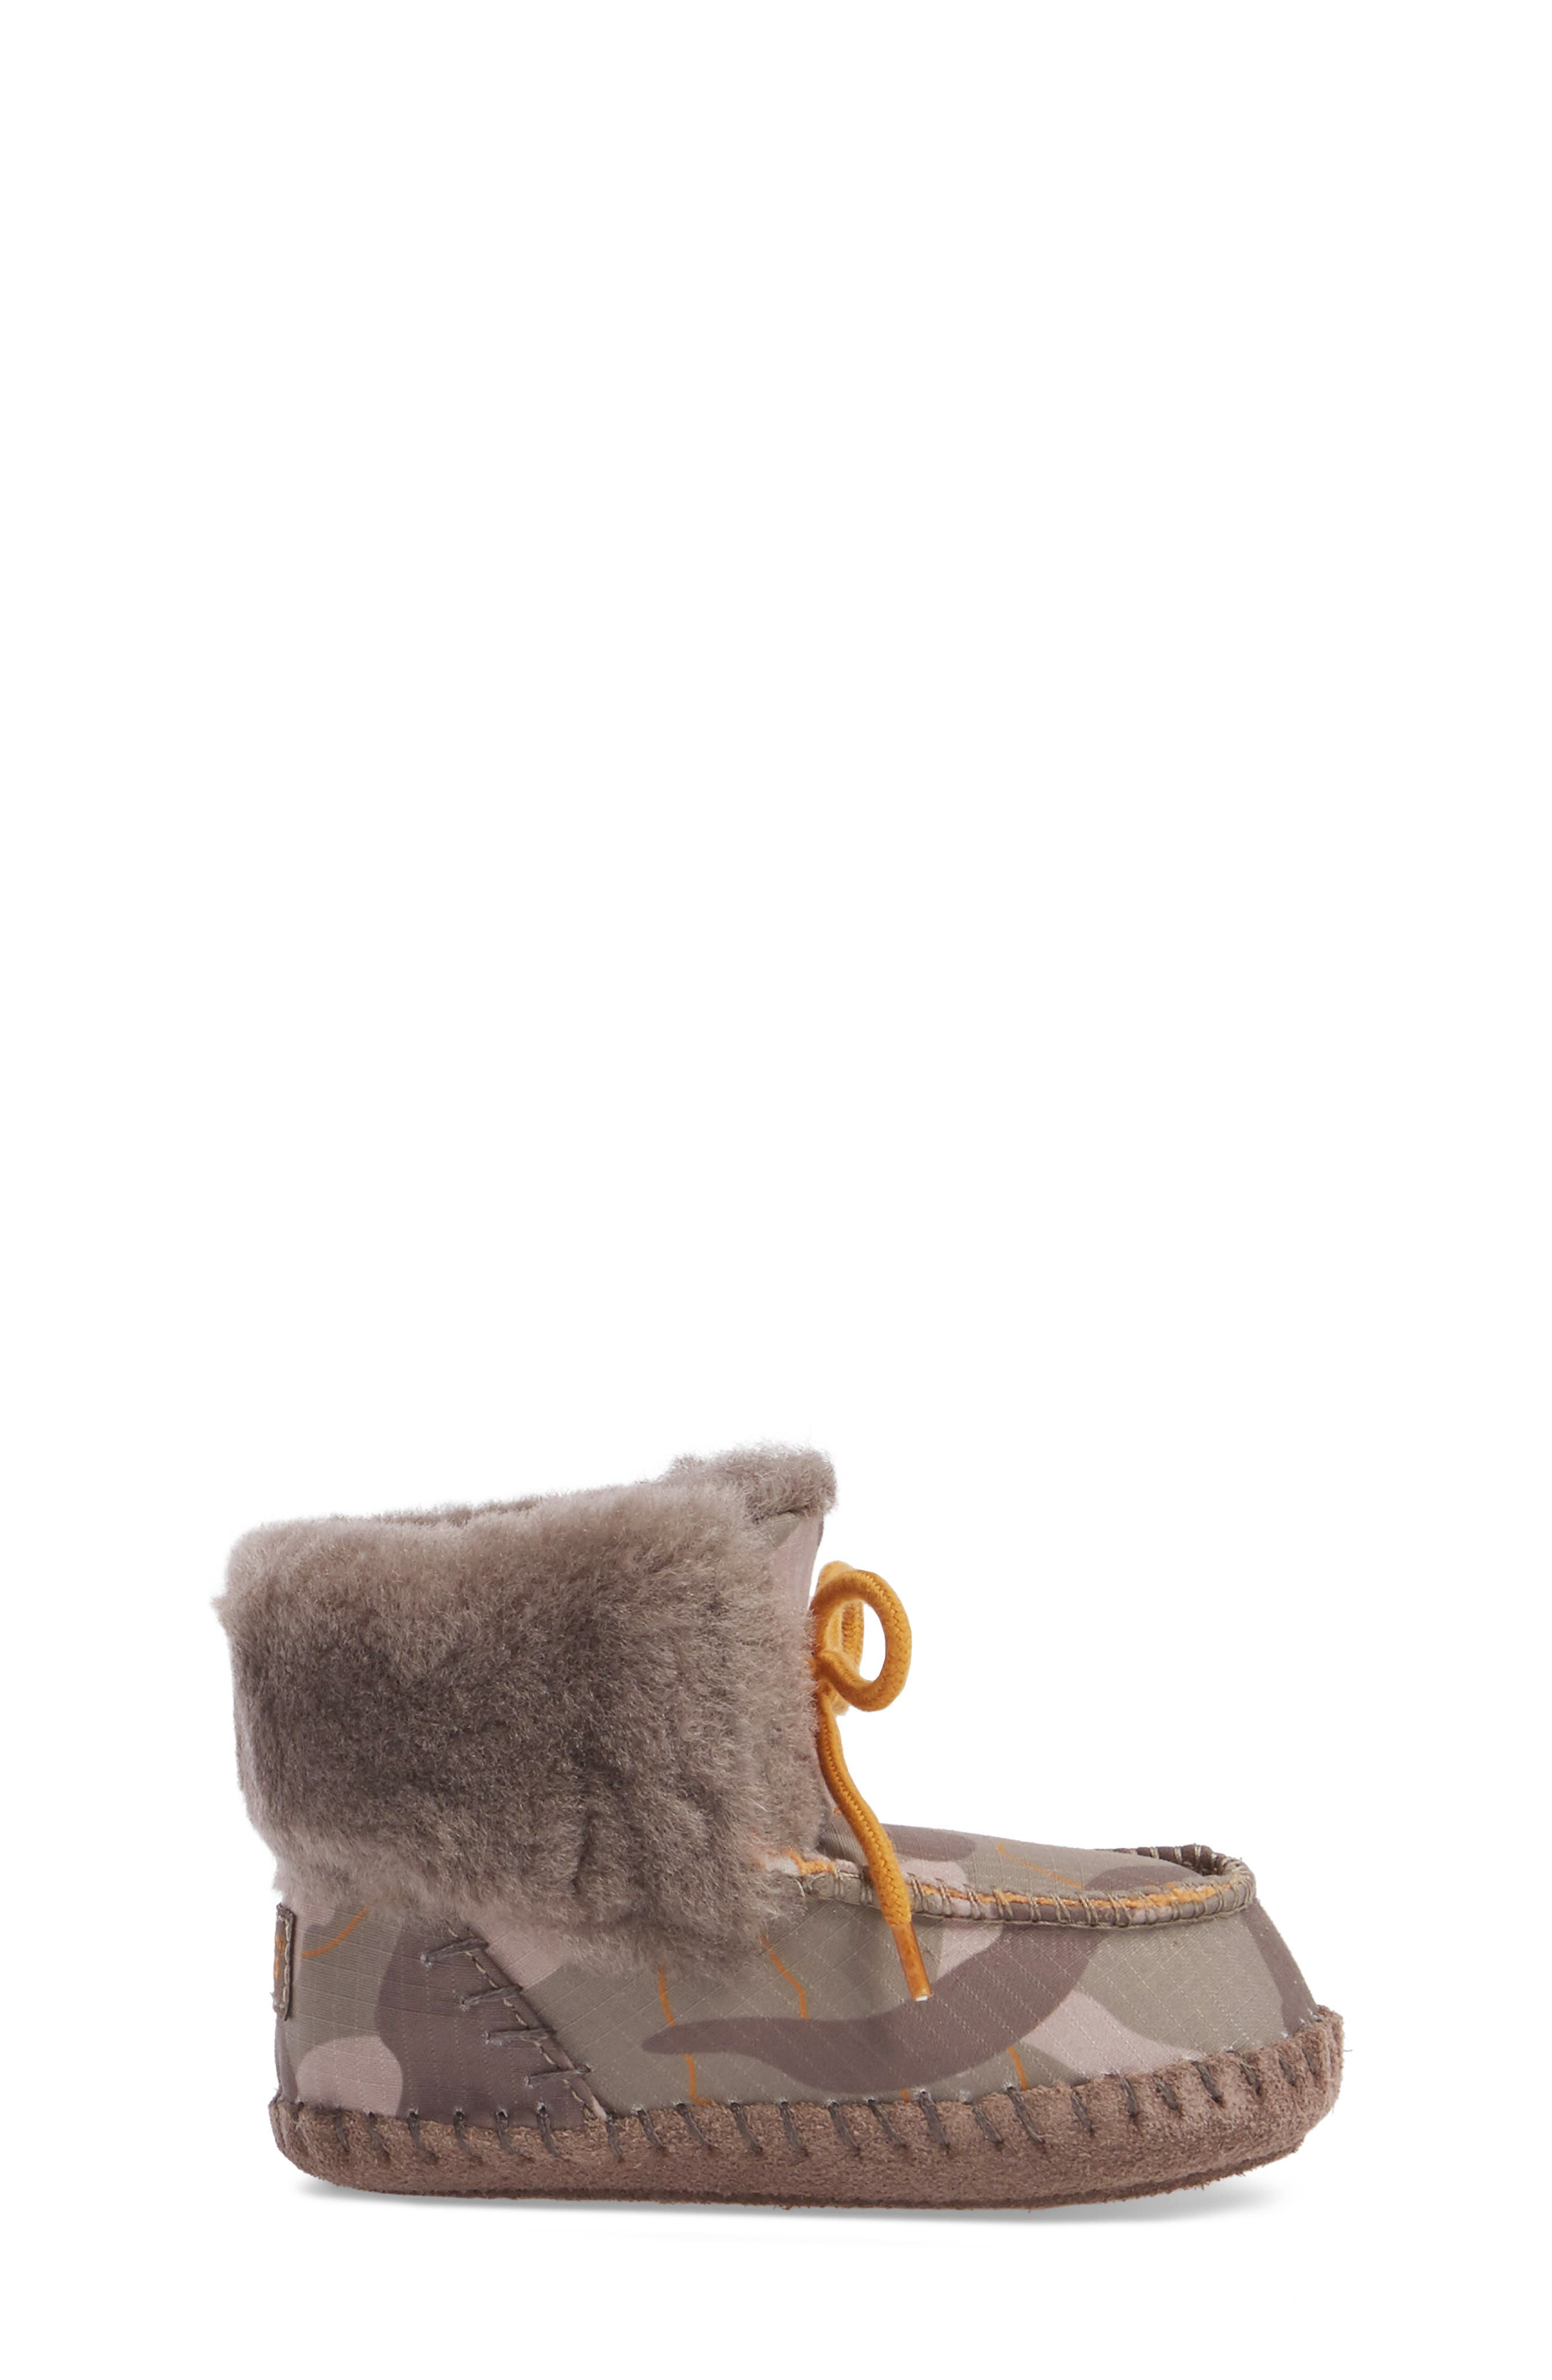 Sparrow Camo Genuine Shearling Moccasin Bootie,                             Alternate thumbnail 3, color,                             020